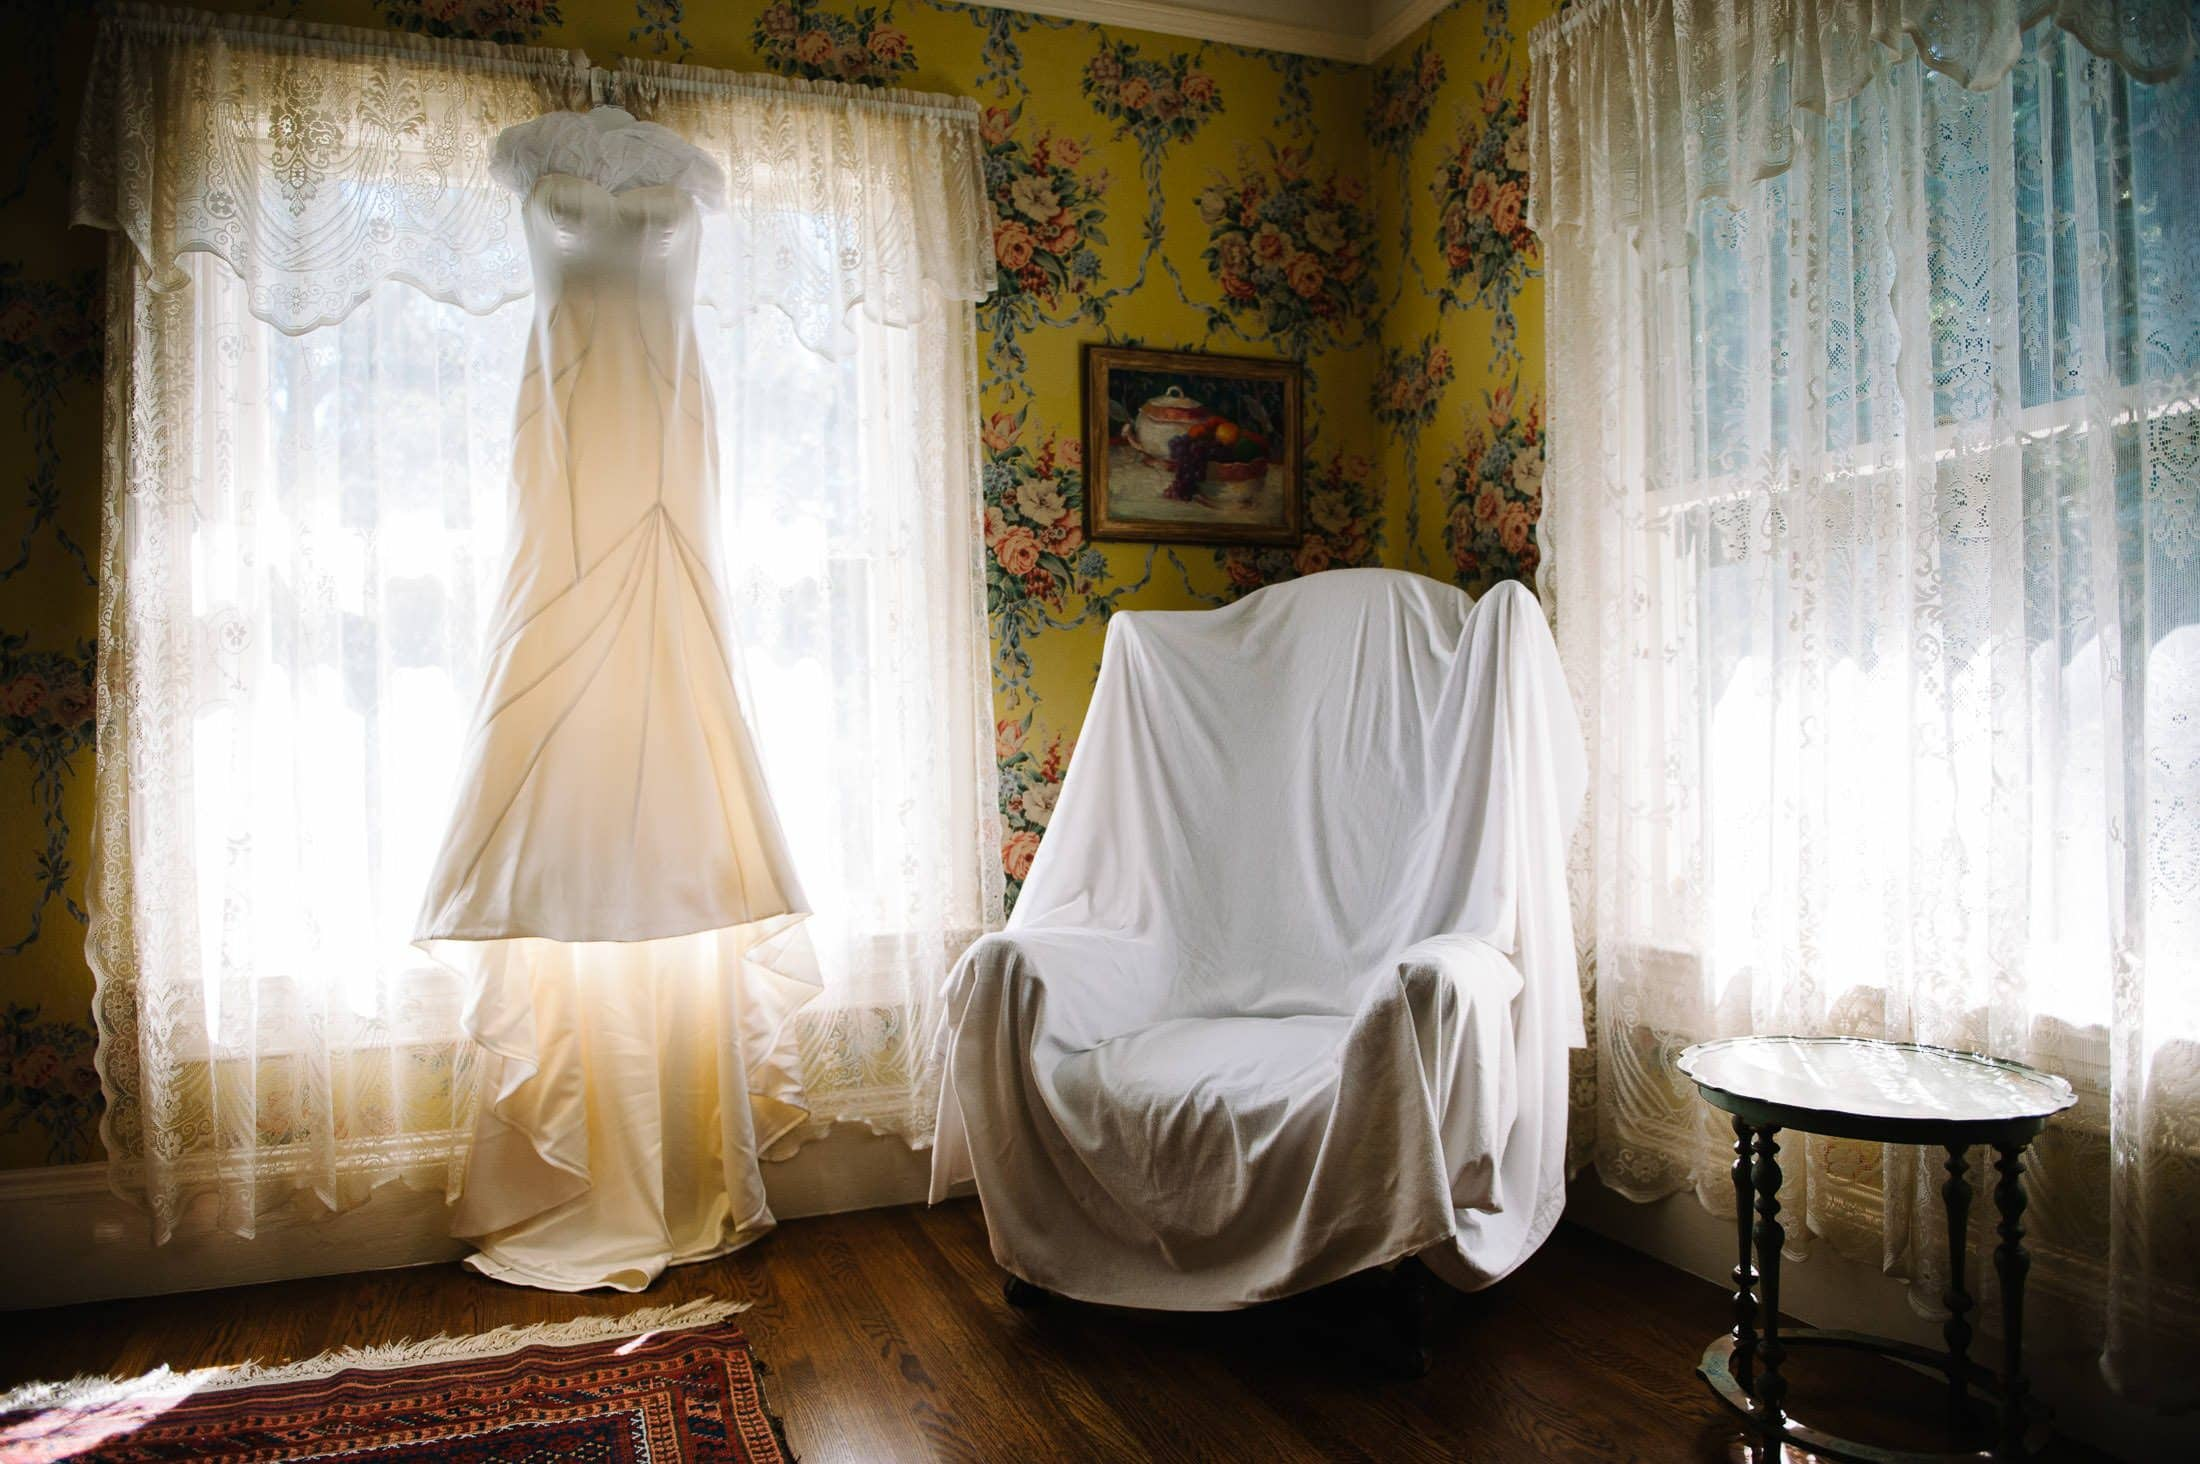 Fun, Artistic, and inspiring image of wedding dress against floral wall paper at Atherton Wedding